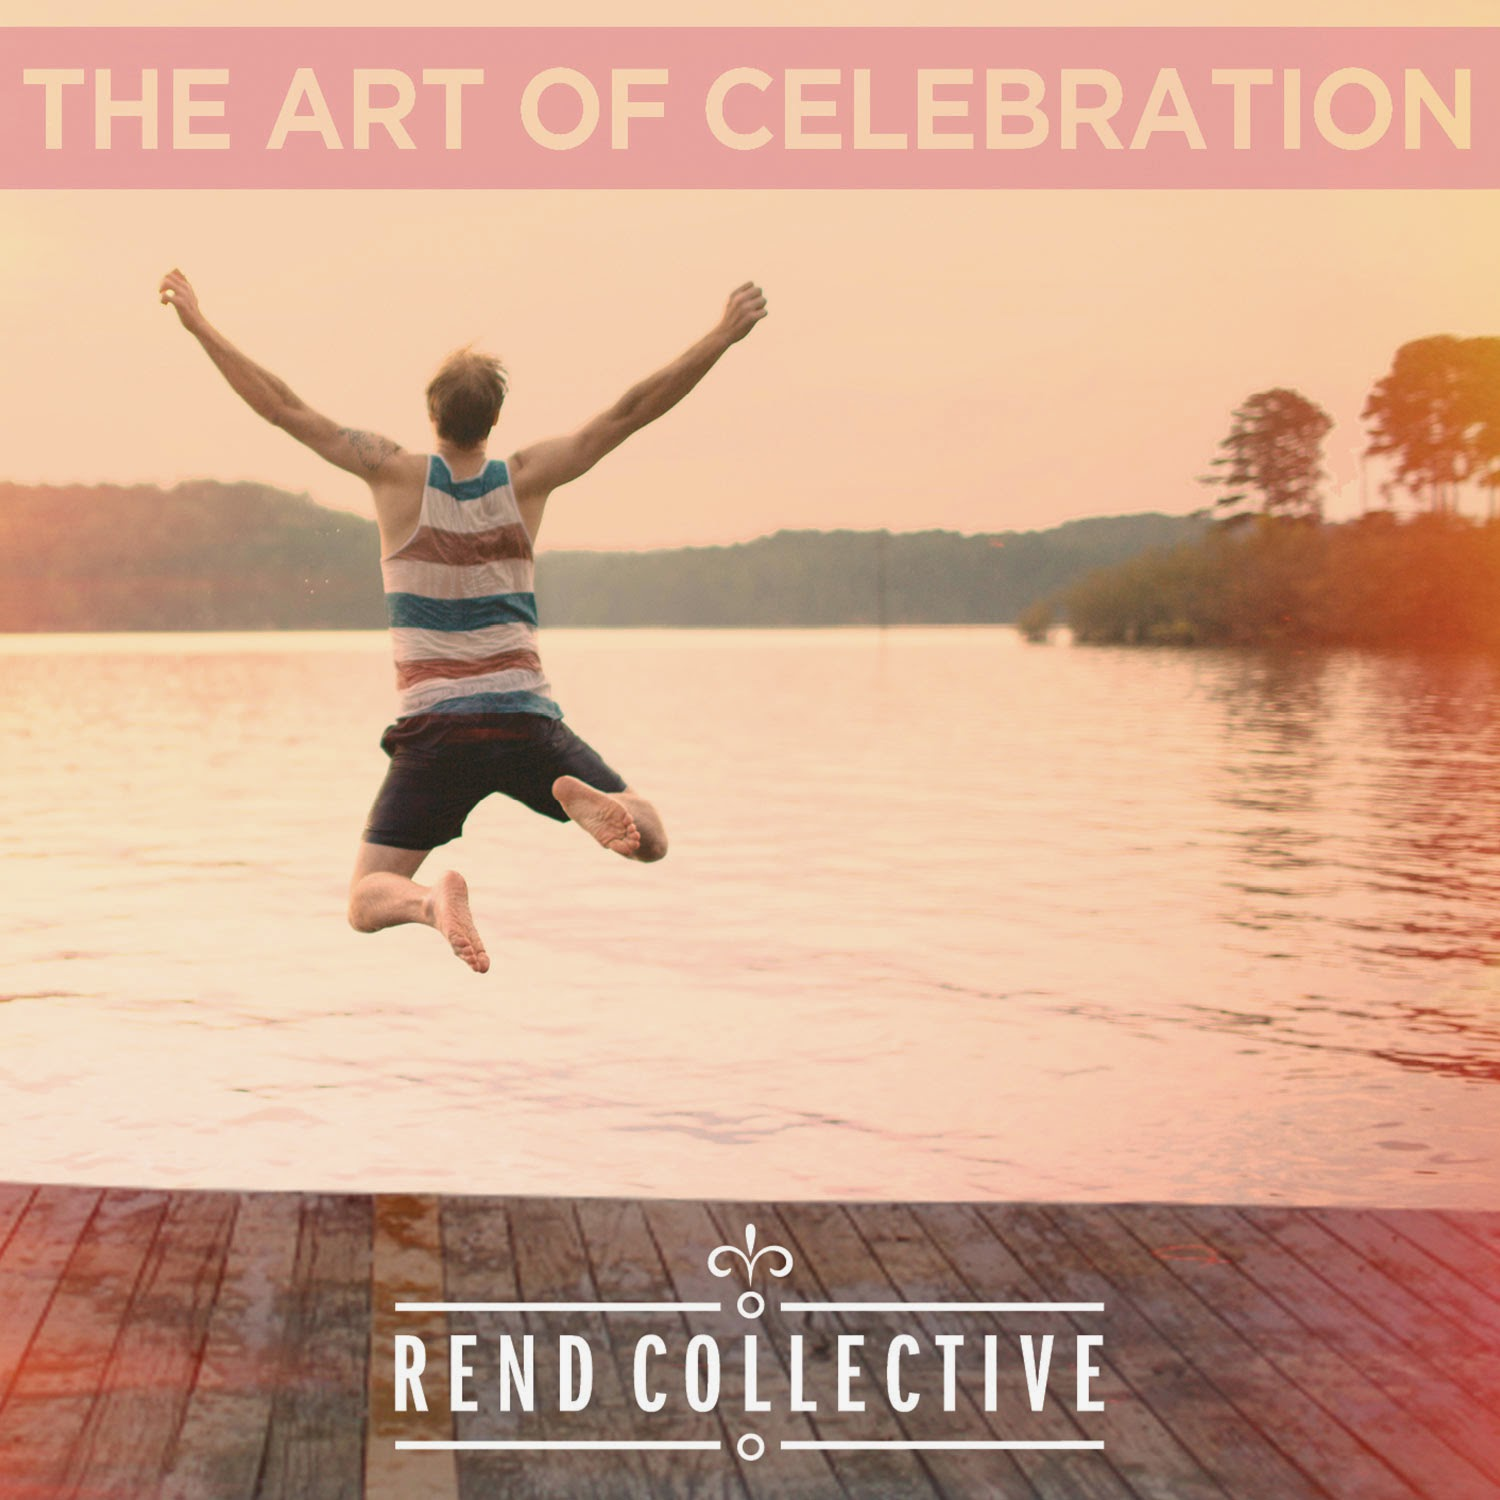 Rend Collective - The Art of Celebration 2014 English Christian Album Download